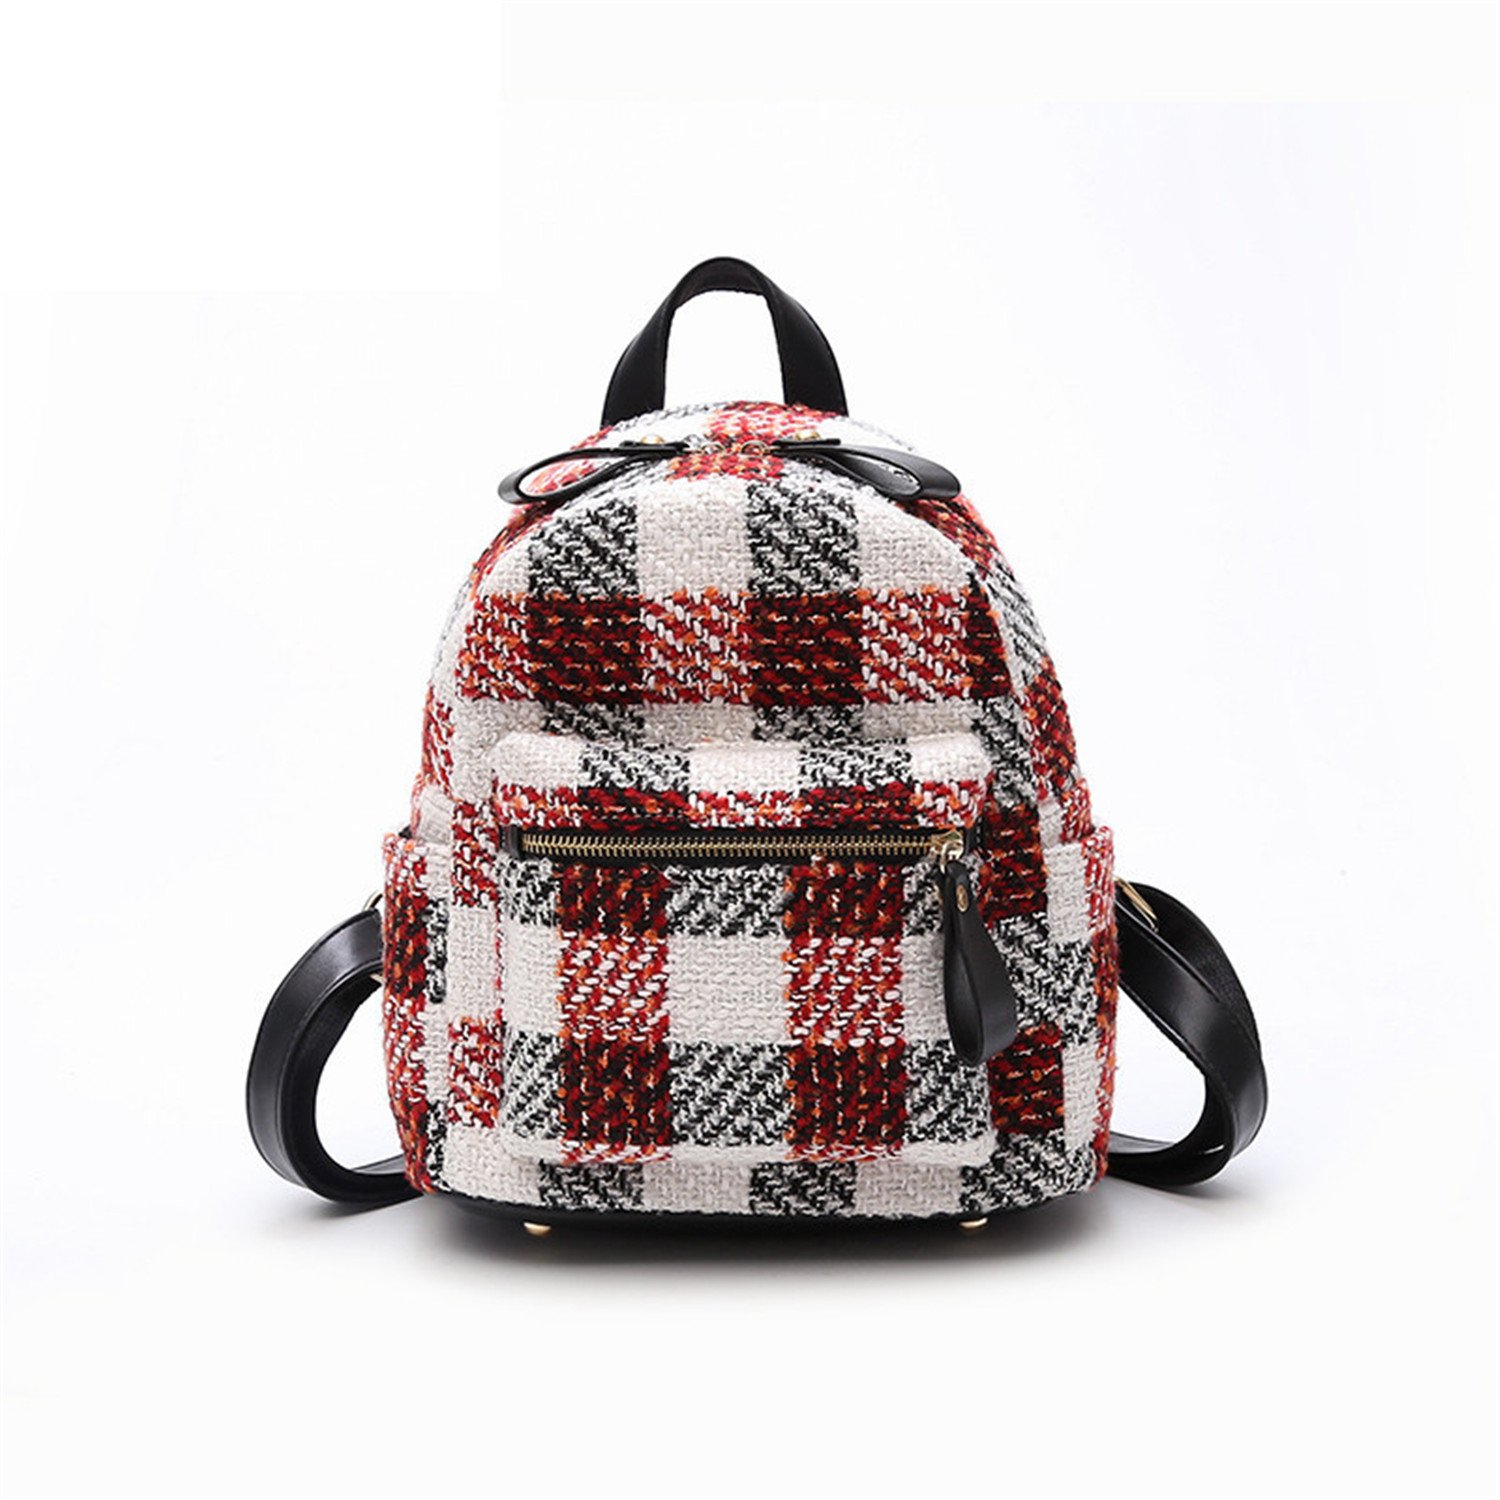 Amazon.com: Richard Nguyen Luxury Plaid Bag For Women New Backpack Mochilas Mujer New Lady Felt Backpack Women Bagpack Red: Clothing